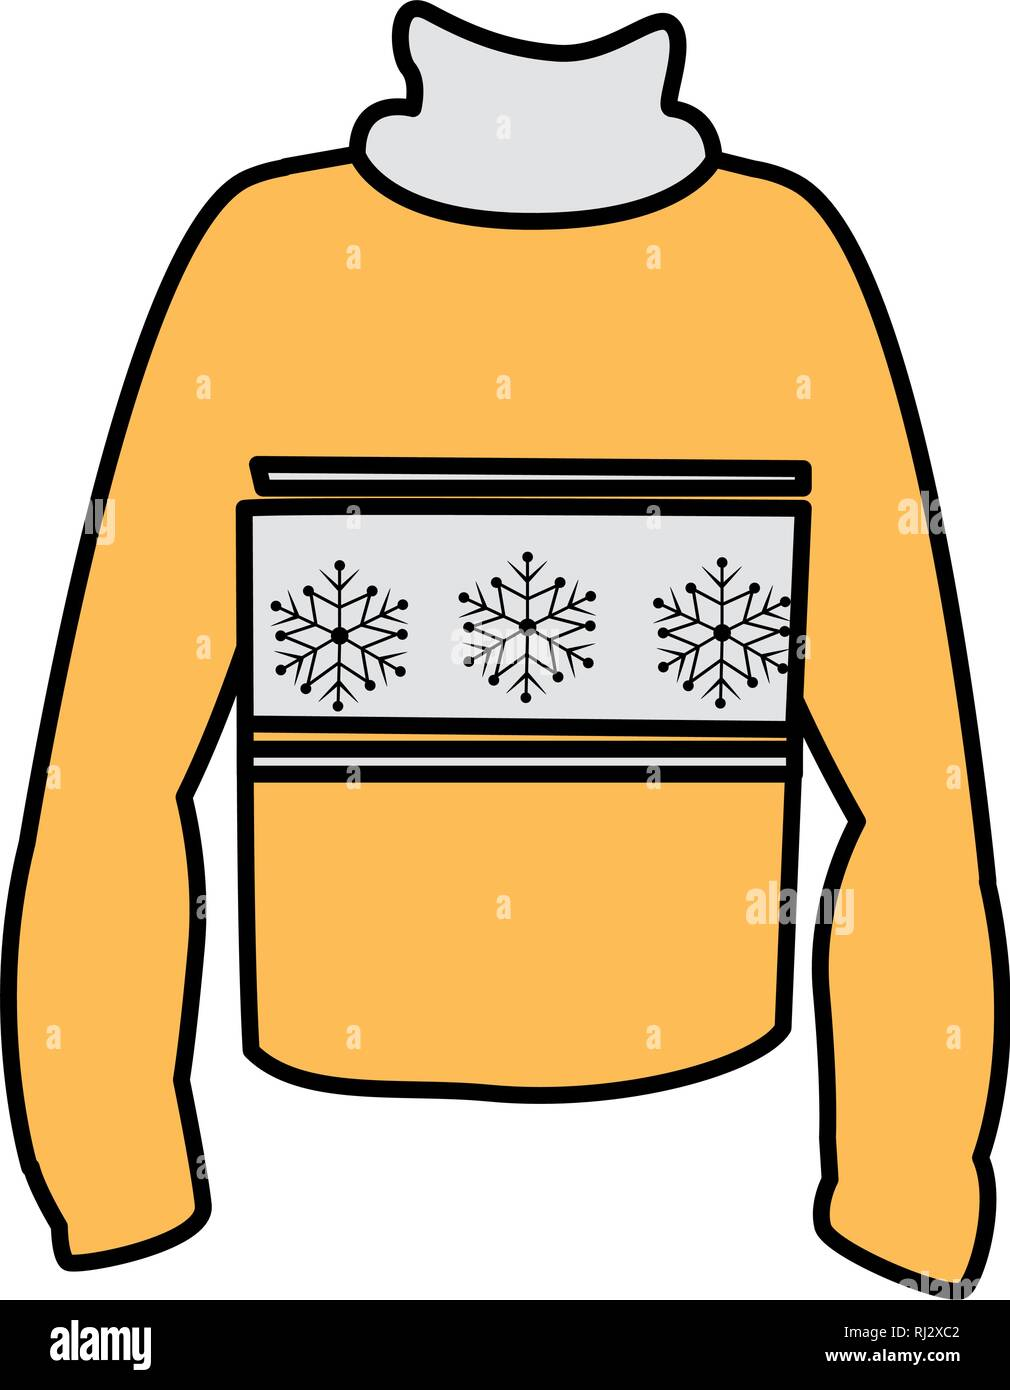 winter season sweater icon vector illustration design - Stock Vector